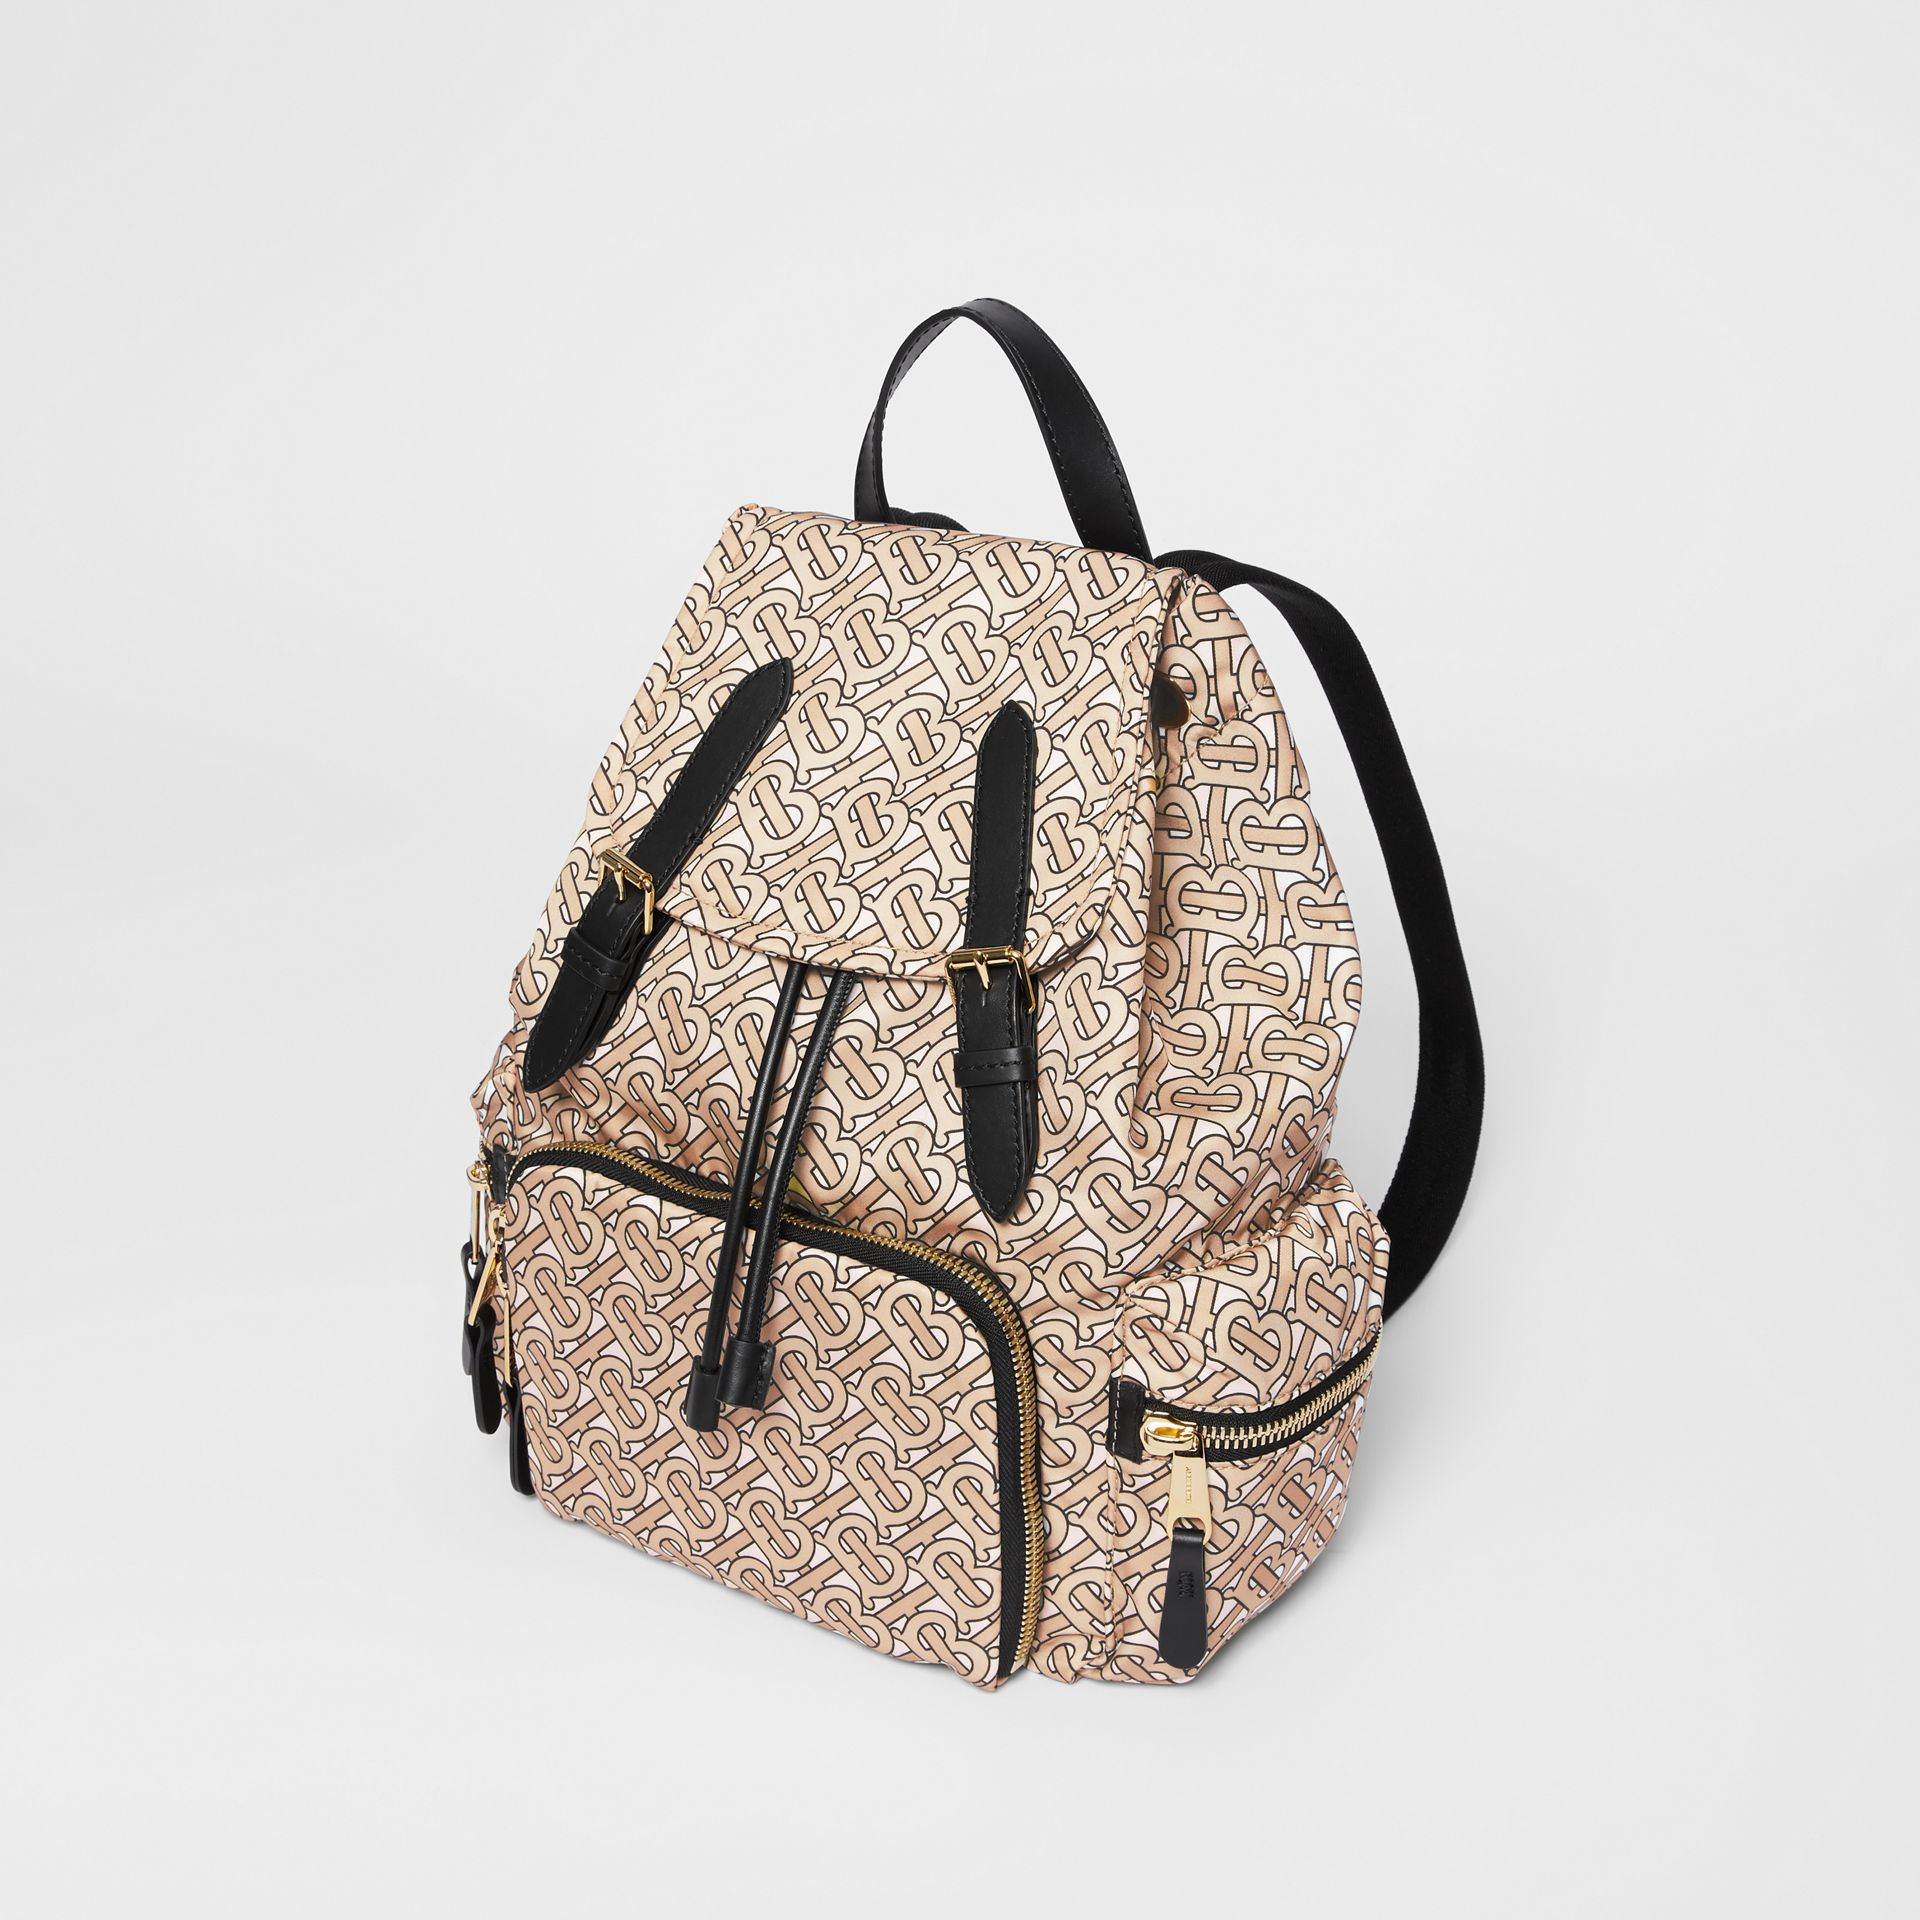 Sac The Rucksack moyen en nylon Monogram (Beige) - Femme | Burberry Canada - photo de la galerie 3